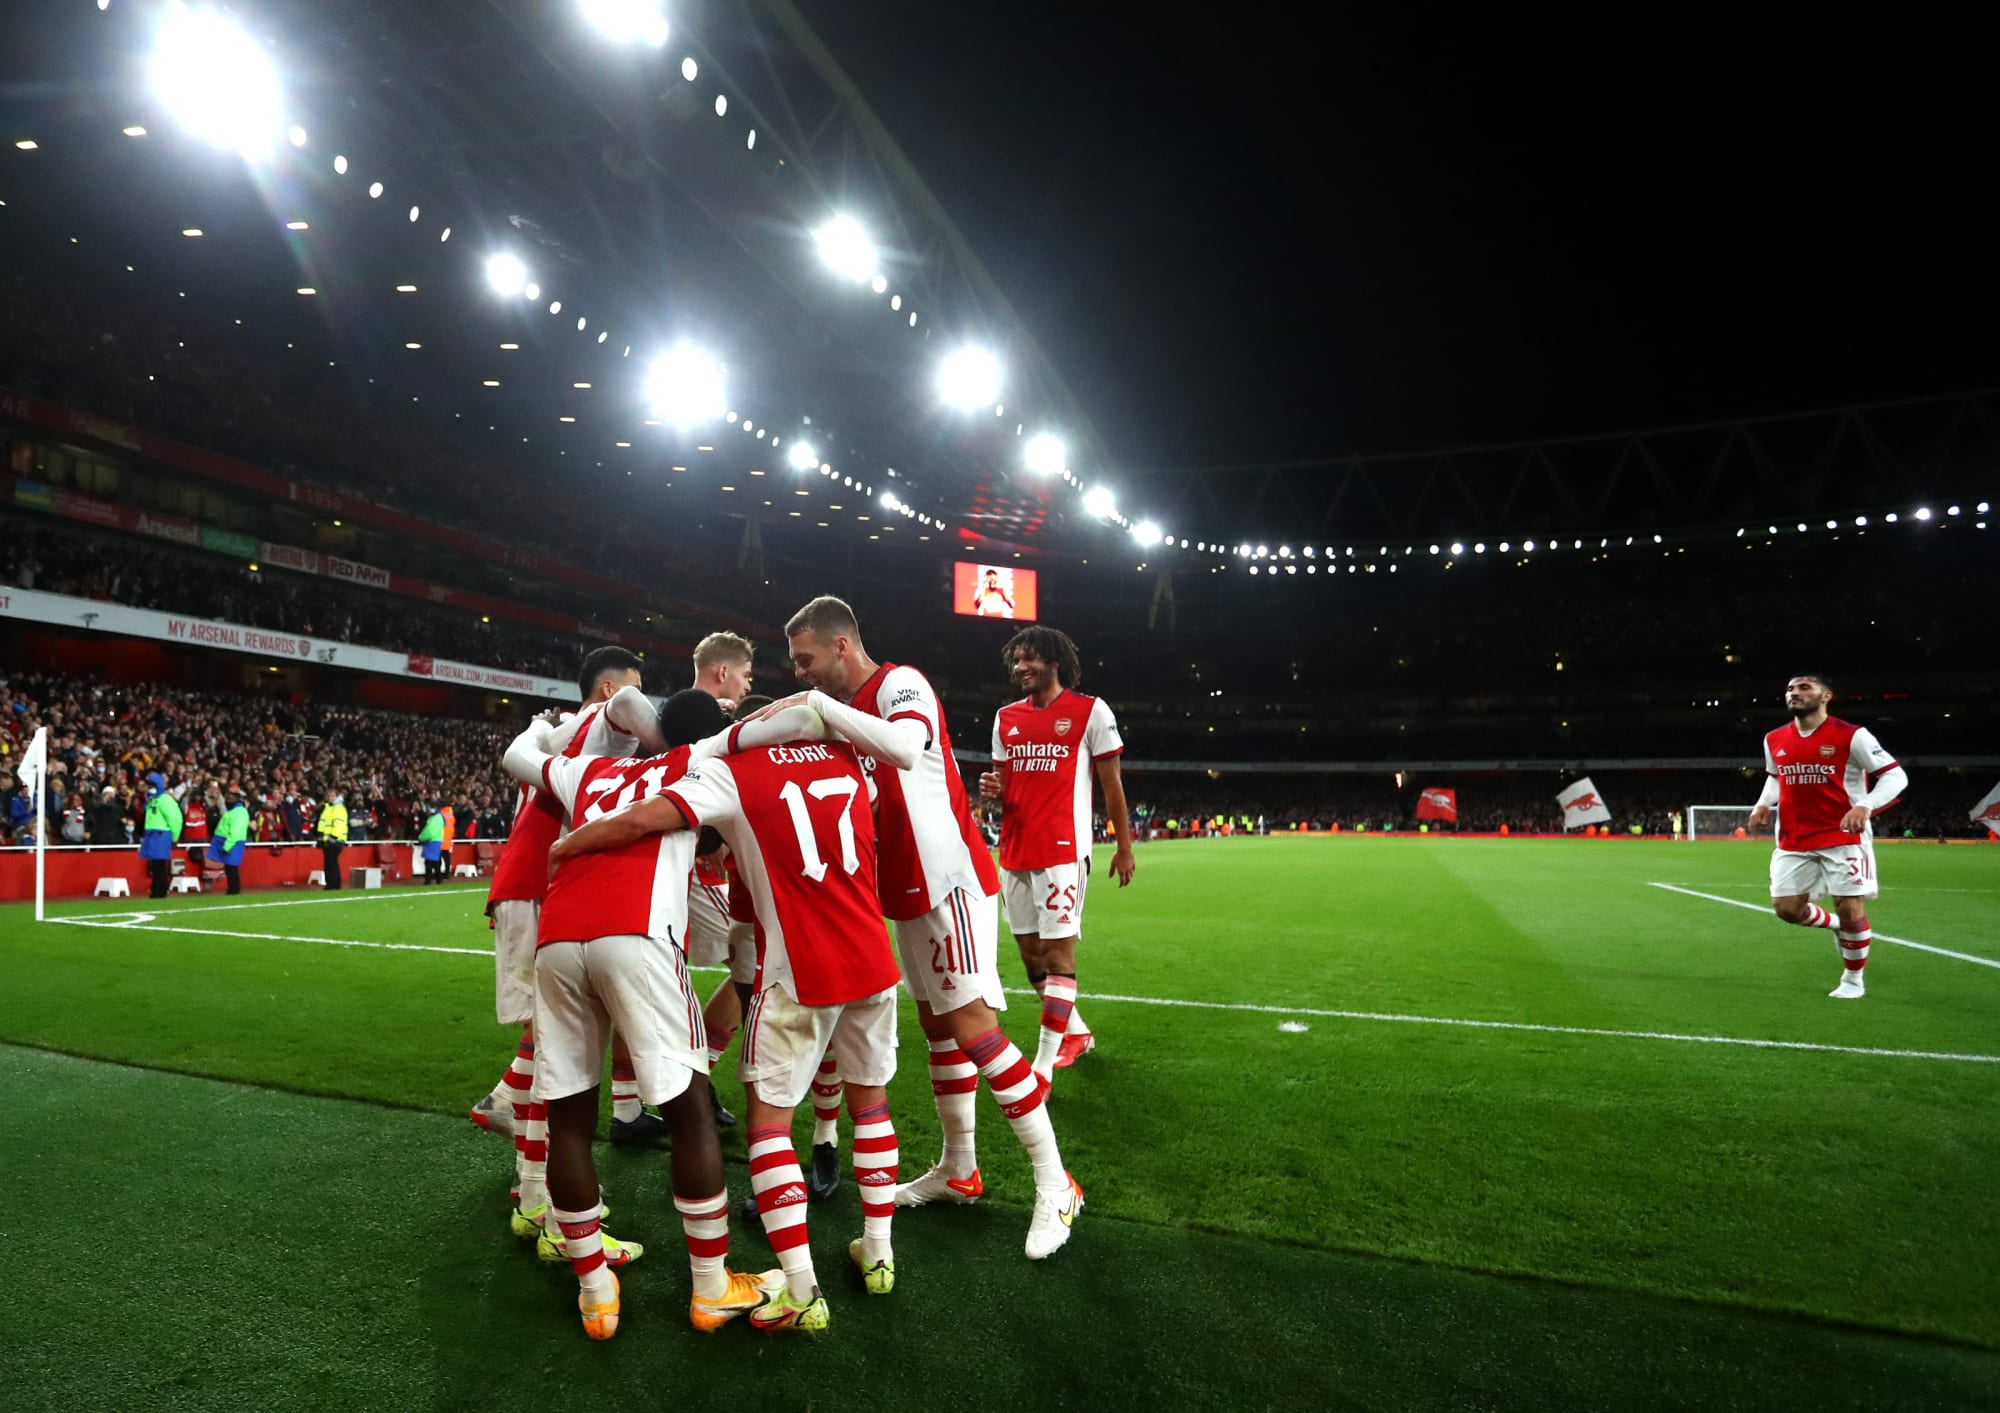 Arsenal vs Leeds: Why the 2-0 win is extra special